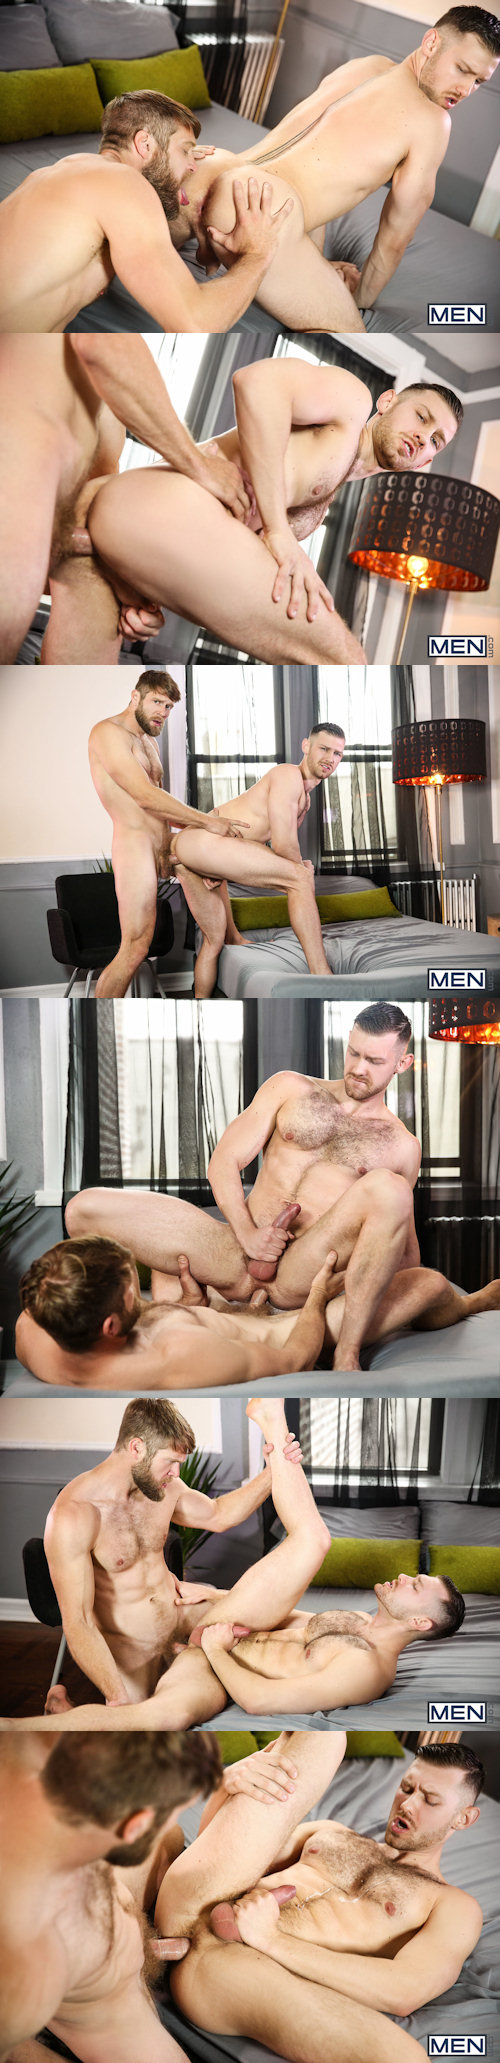 men-colby-keller-jacob-peterson-2.jpg